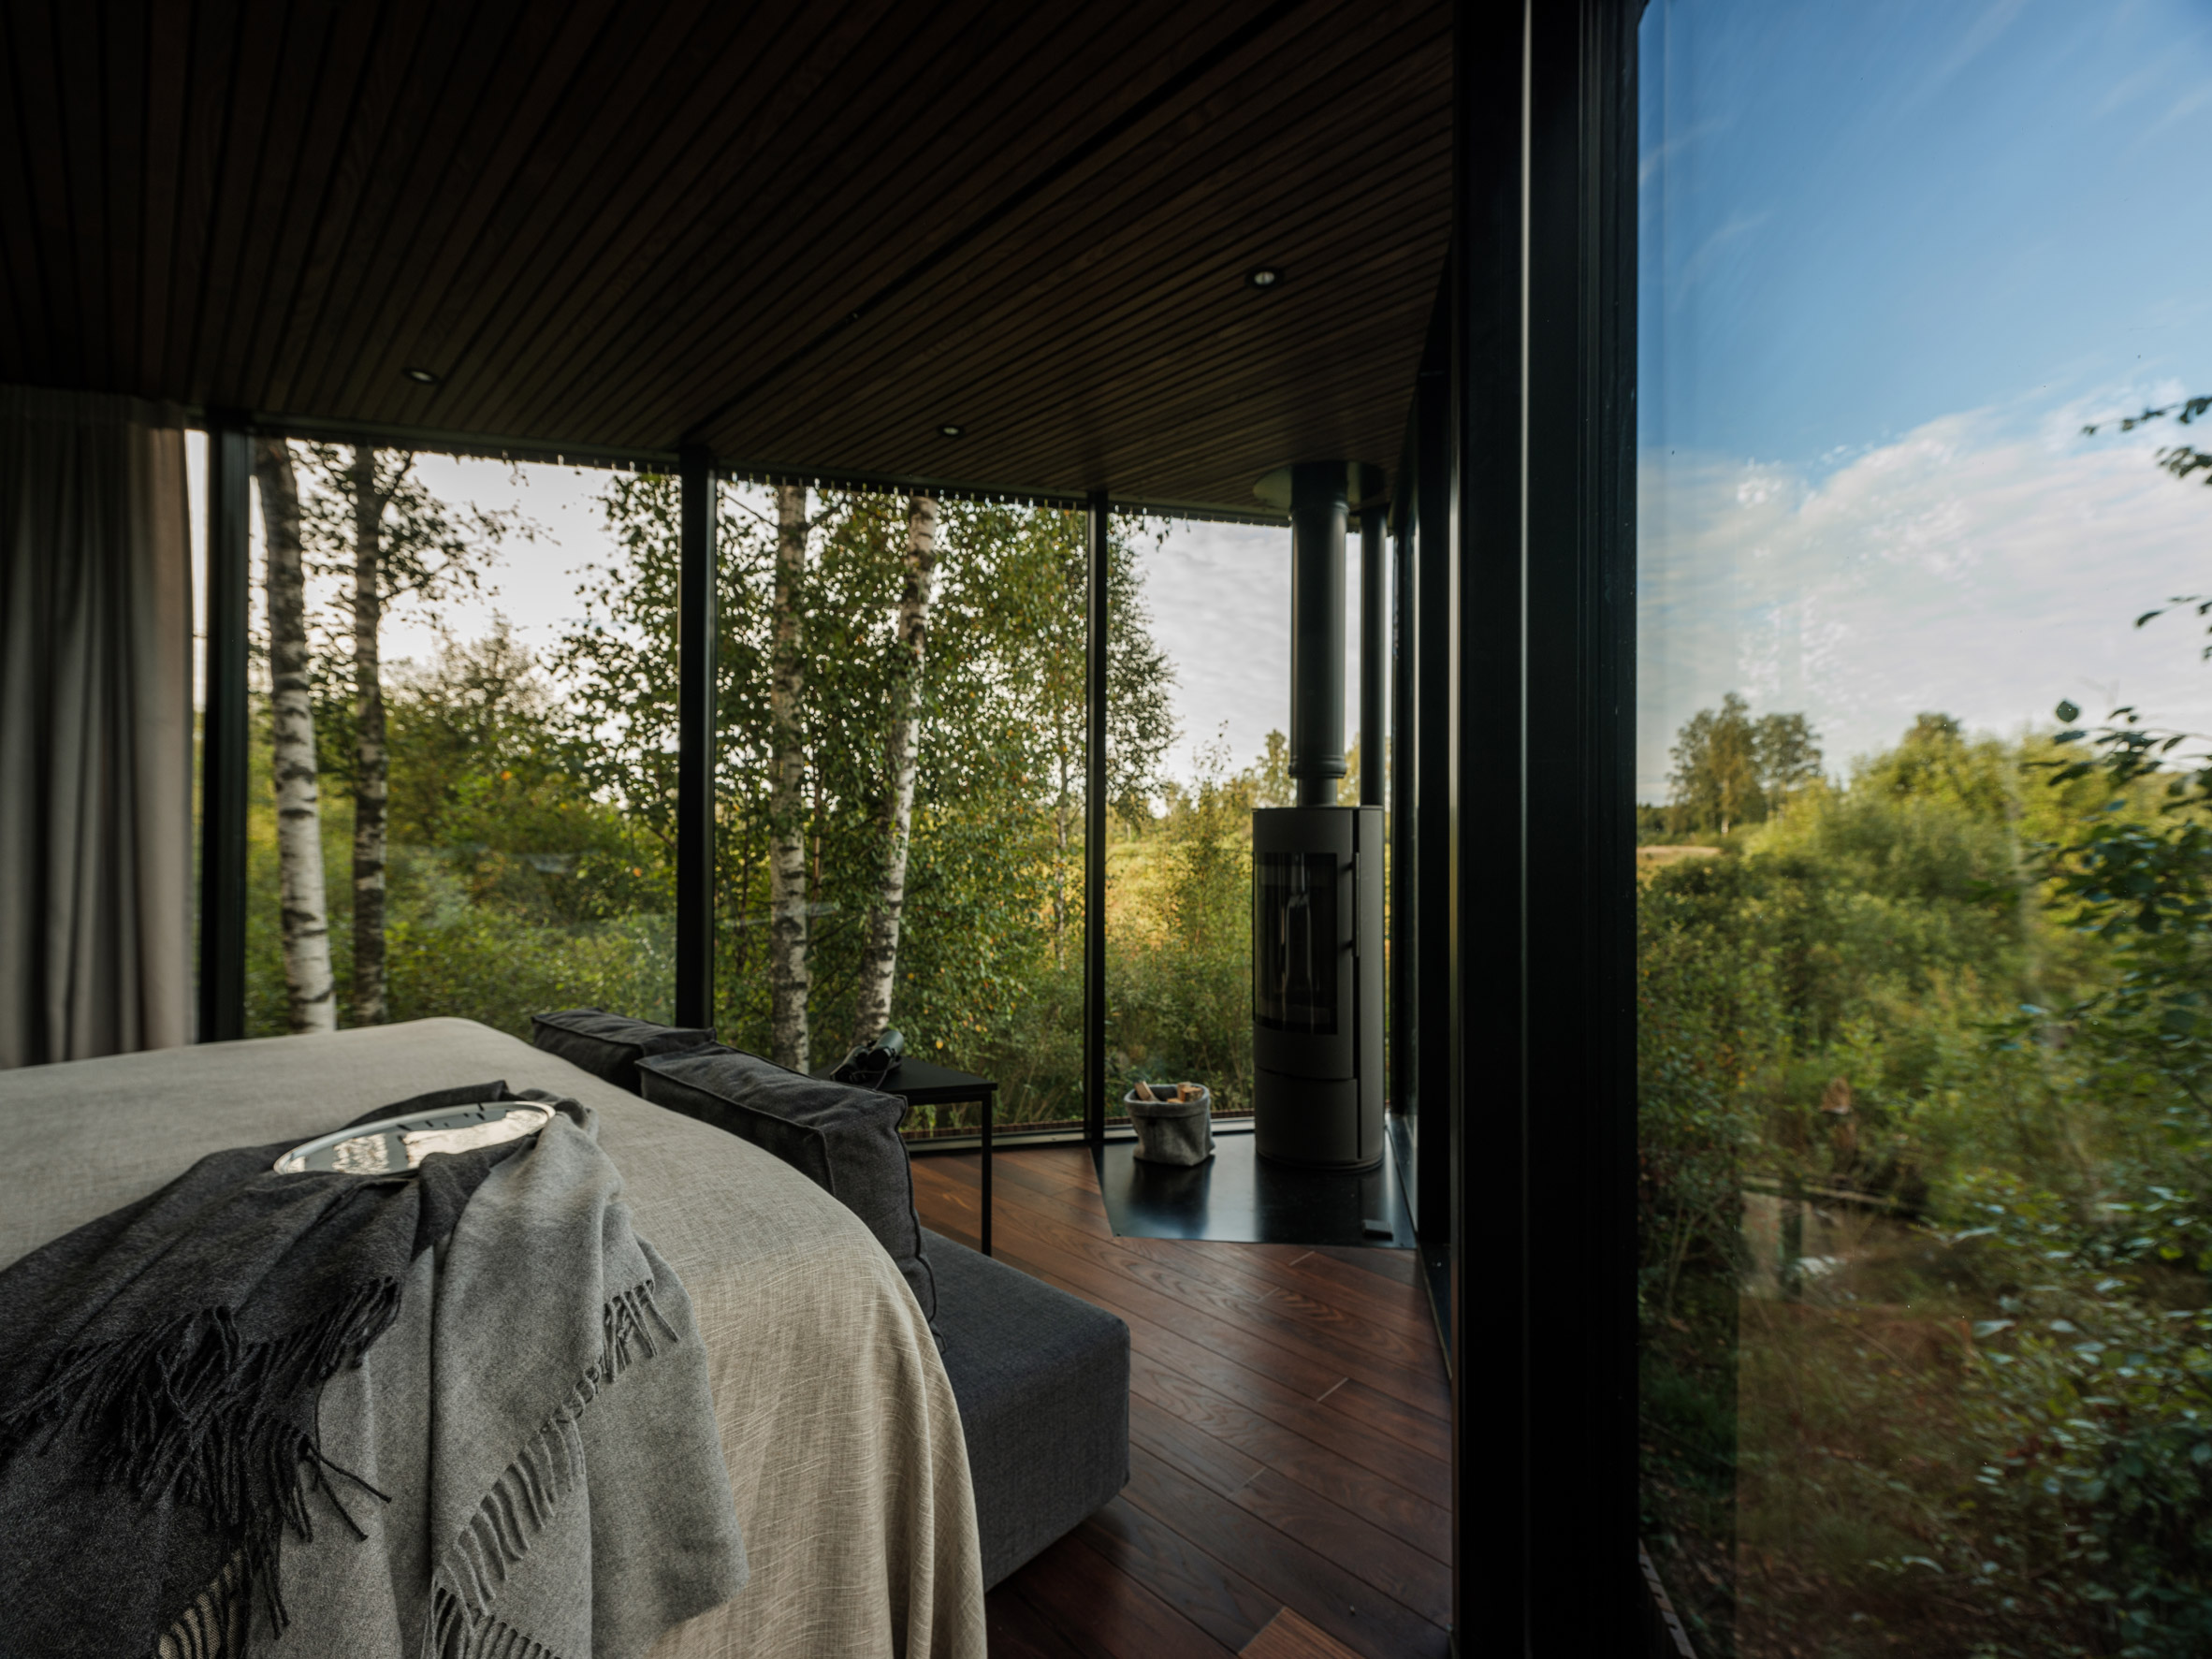 The interiors of a glass-walled cabin